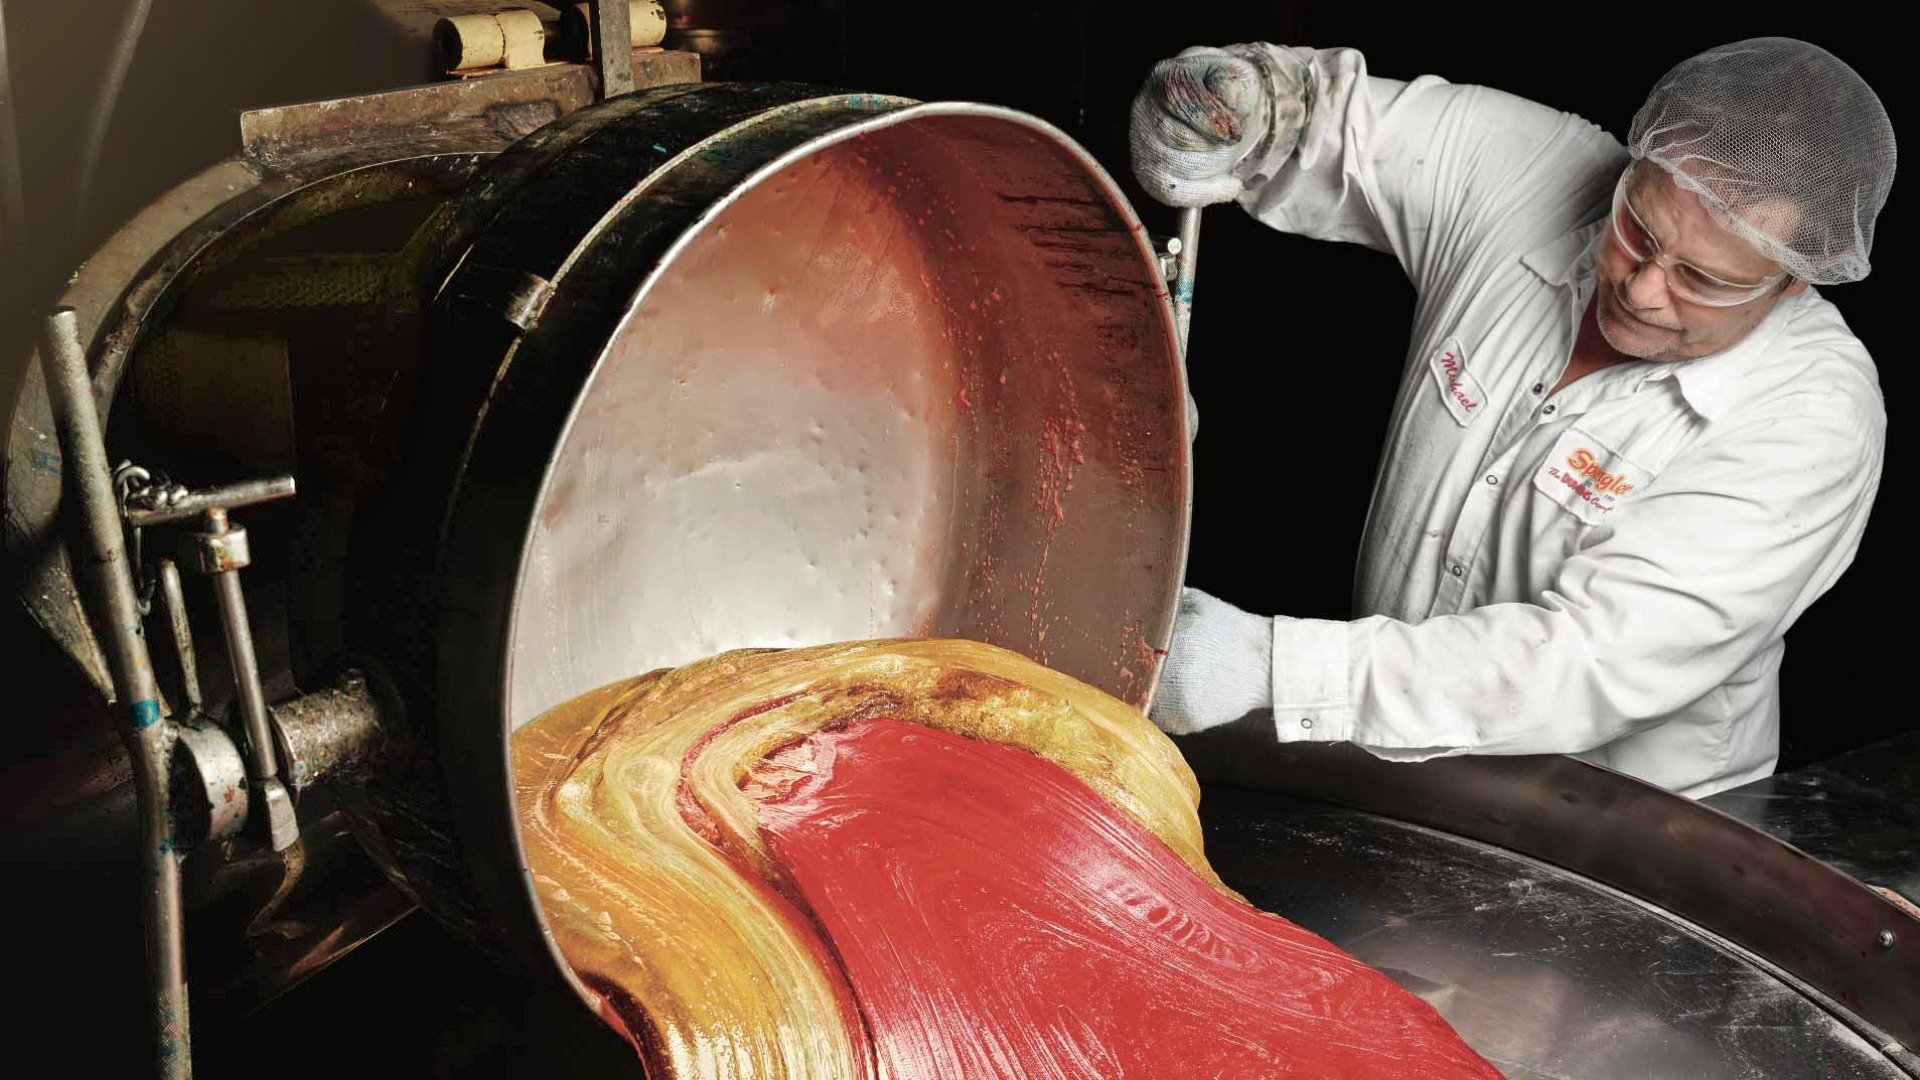 This colorful goo will soon become a batch of Dum- Dums lollipops. Spangler pumps out 12 million each day and three billion every year. The brand remains its bestseller.